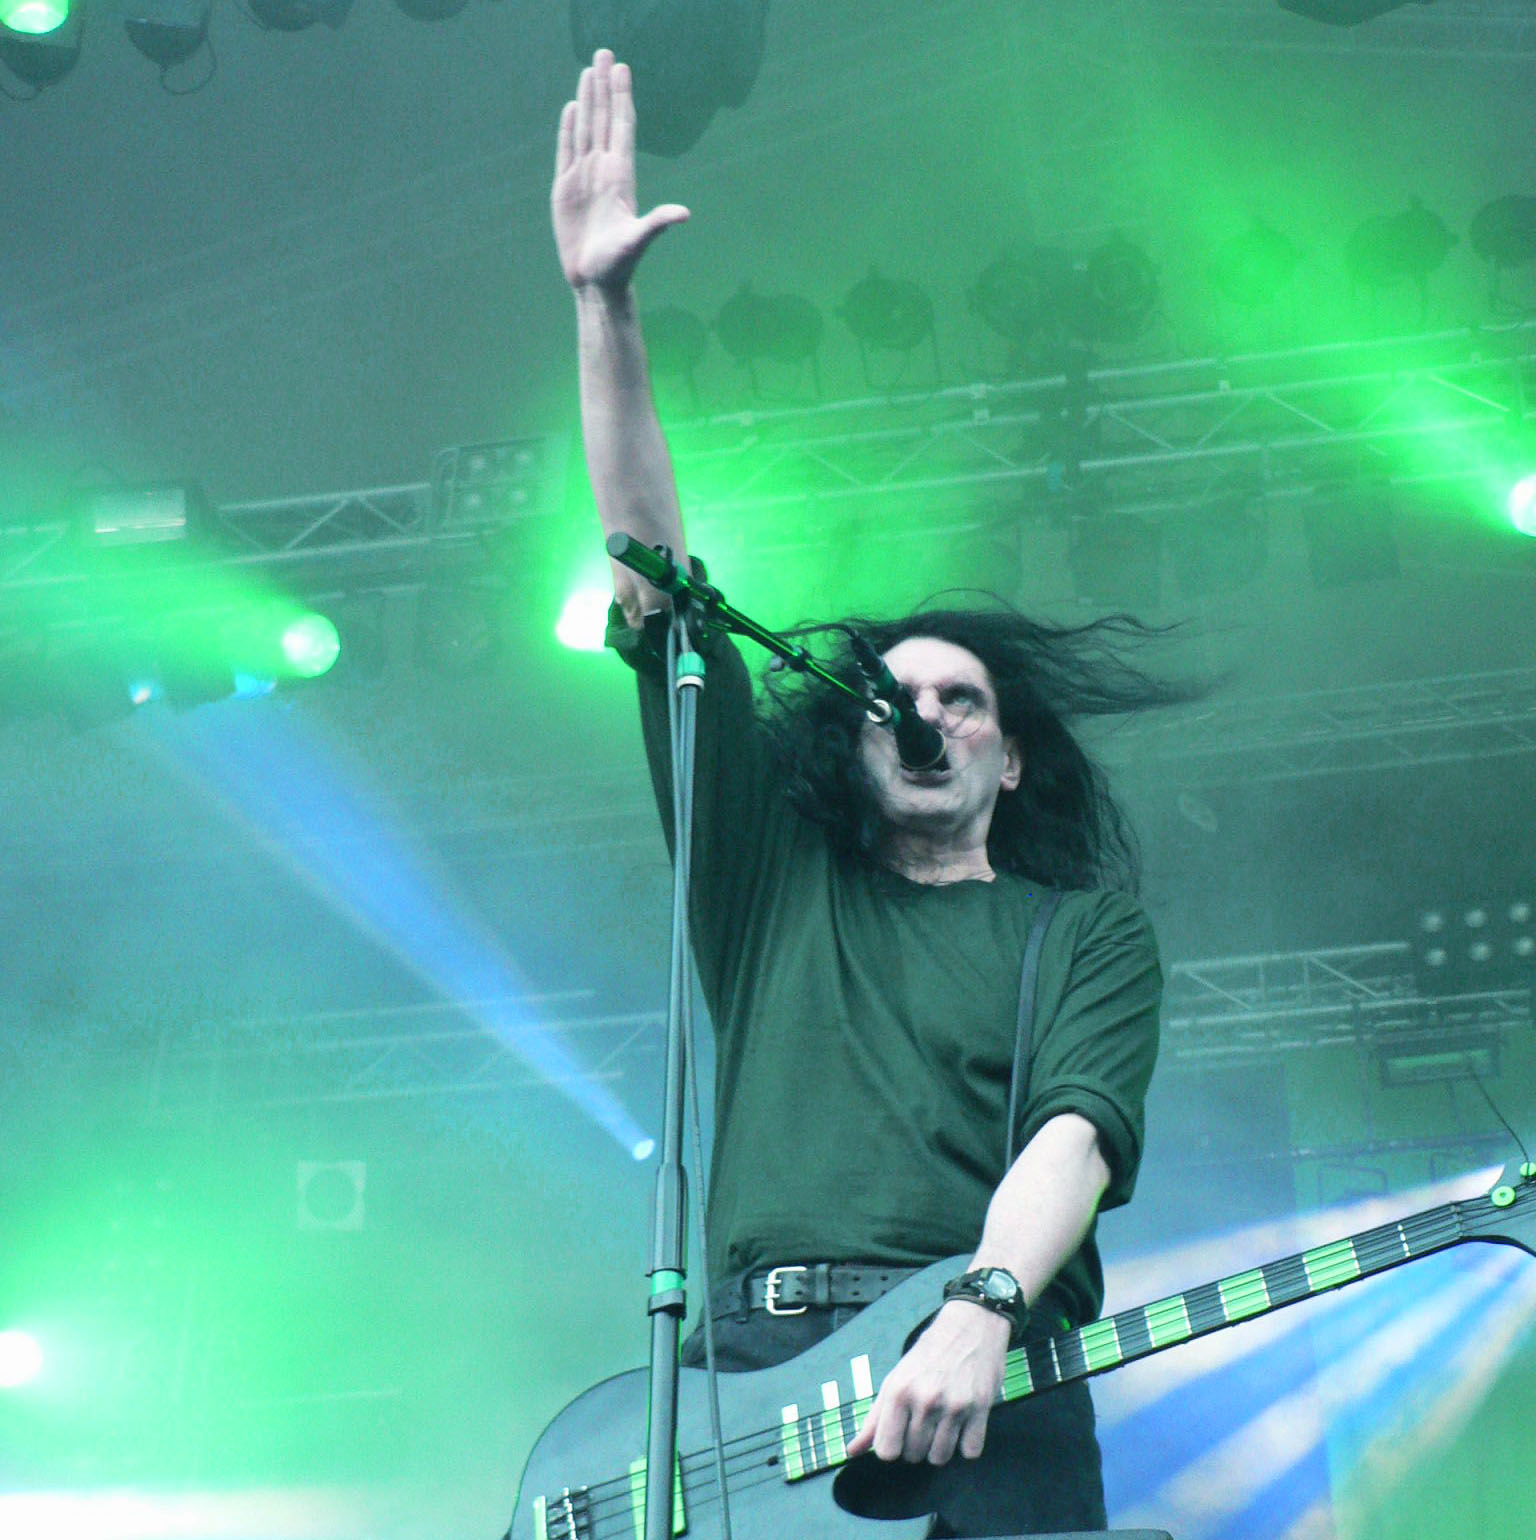 http://upload.wikimedia.org/wikipedia/commons/5/50/Petersteele.jpg